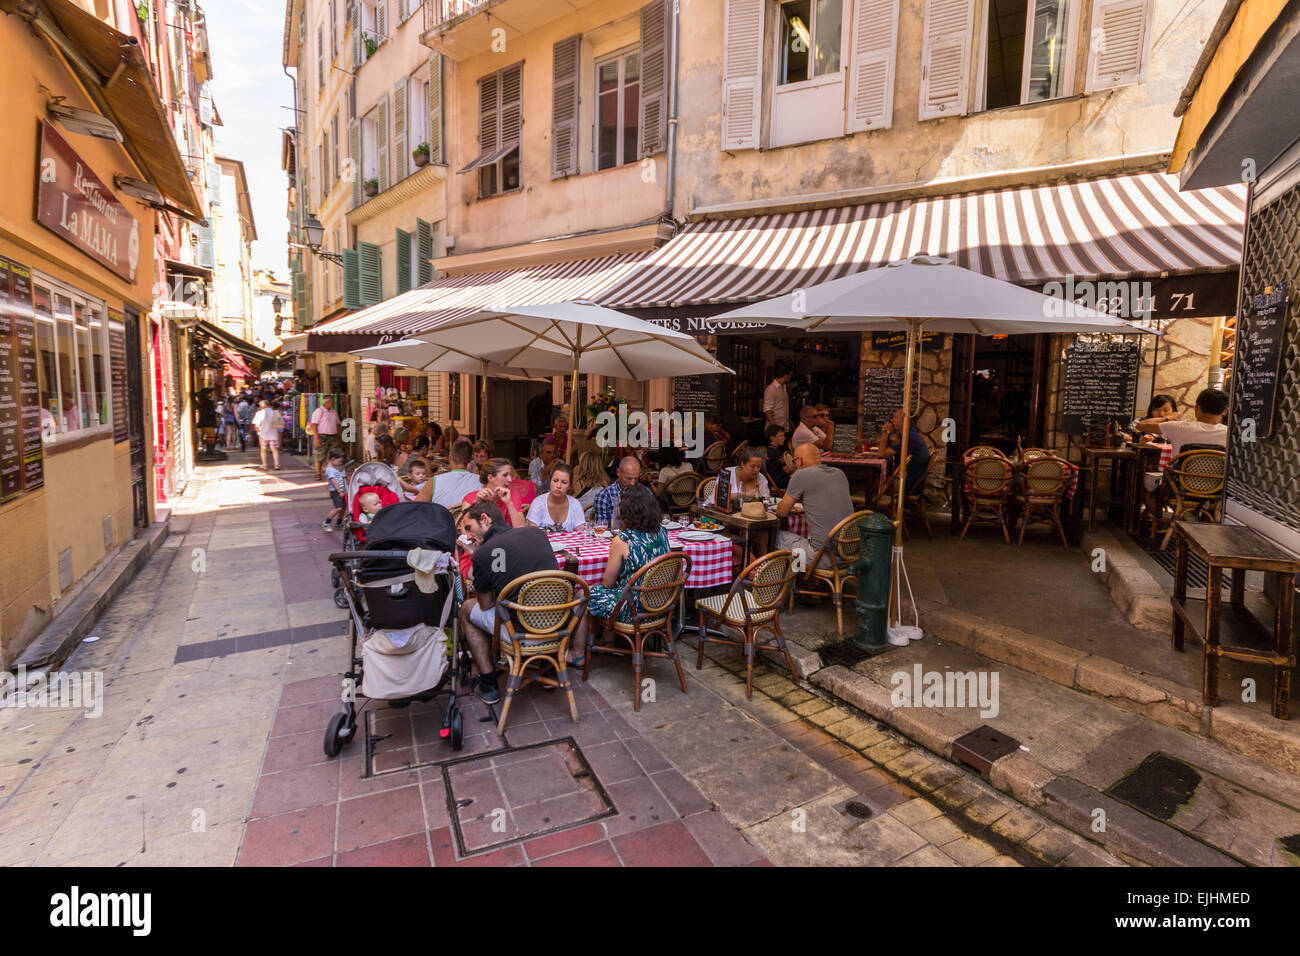 France, Cote d'Azur, Nice, restaurant in old town - Stock Image